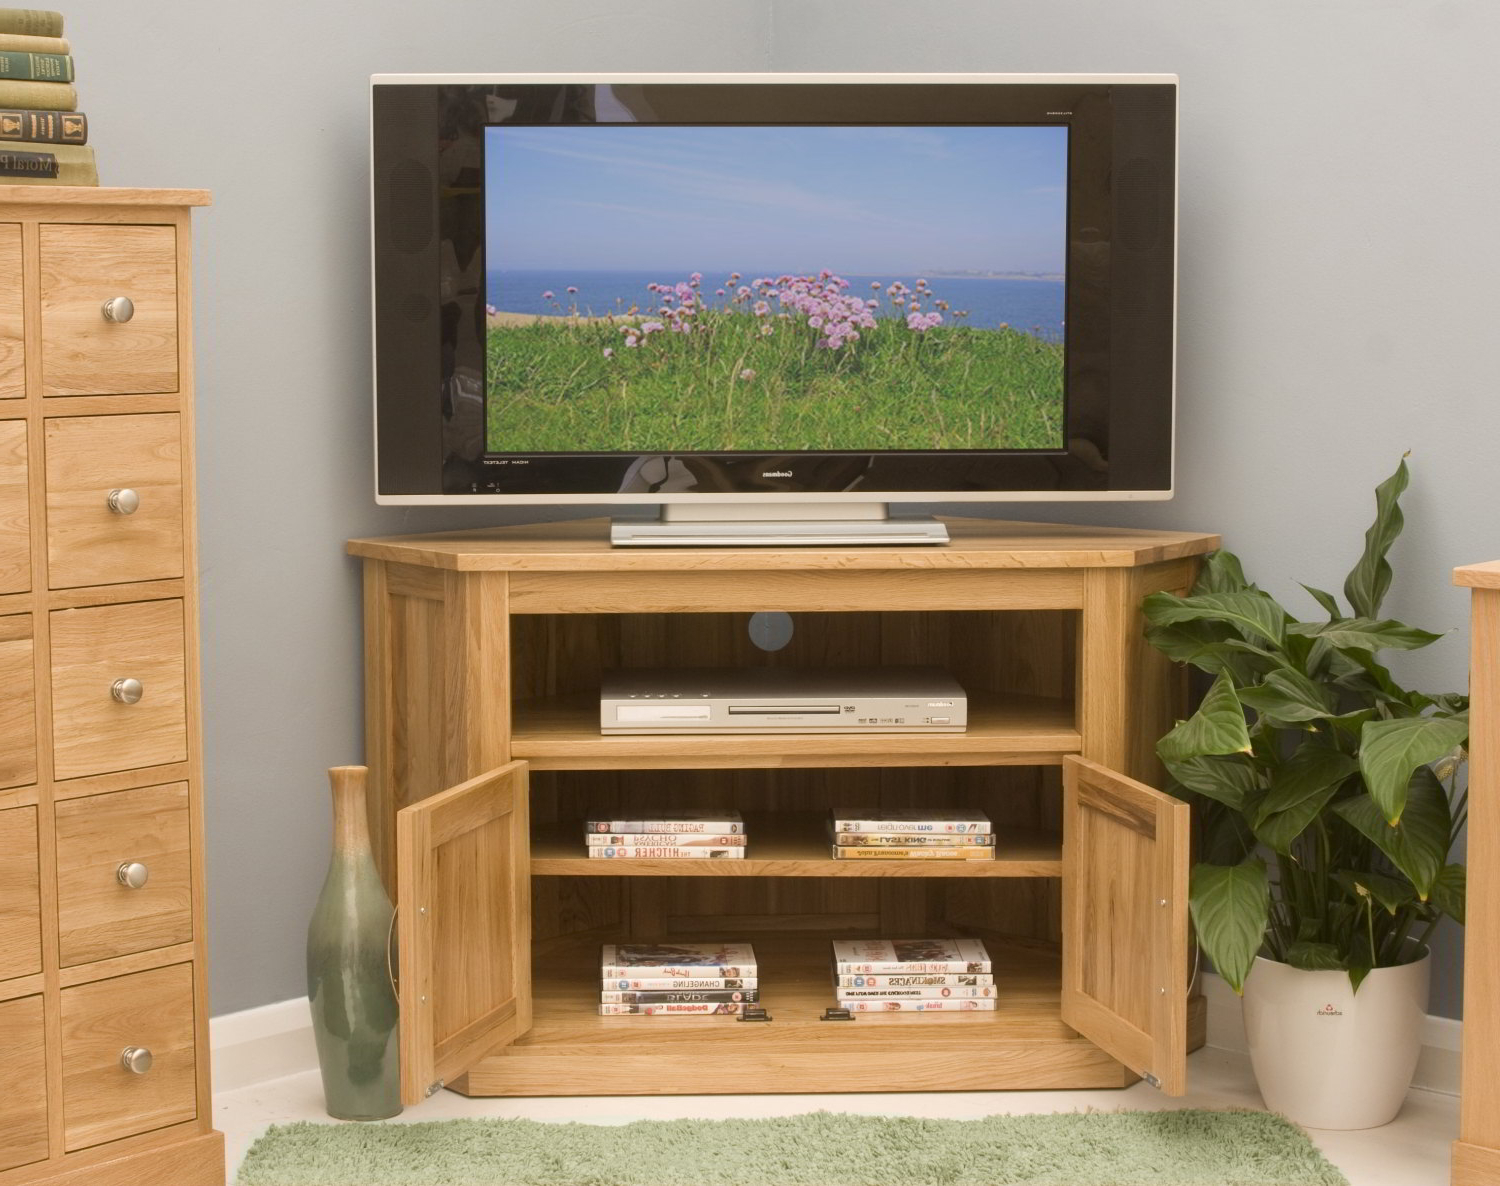 Conran Solid Oak Living Room Furniture Corner Television Cabinet Intended For Widely Used Solid Oak Corner Tv Cabinets (Gallery 19 of 20)